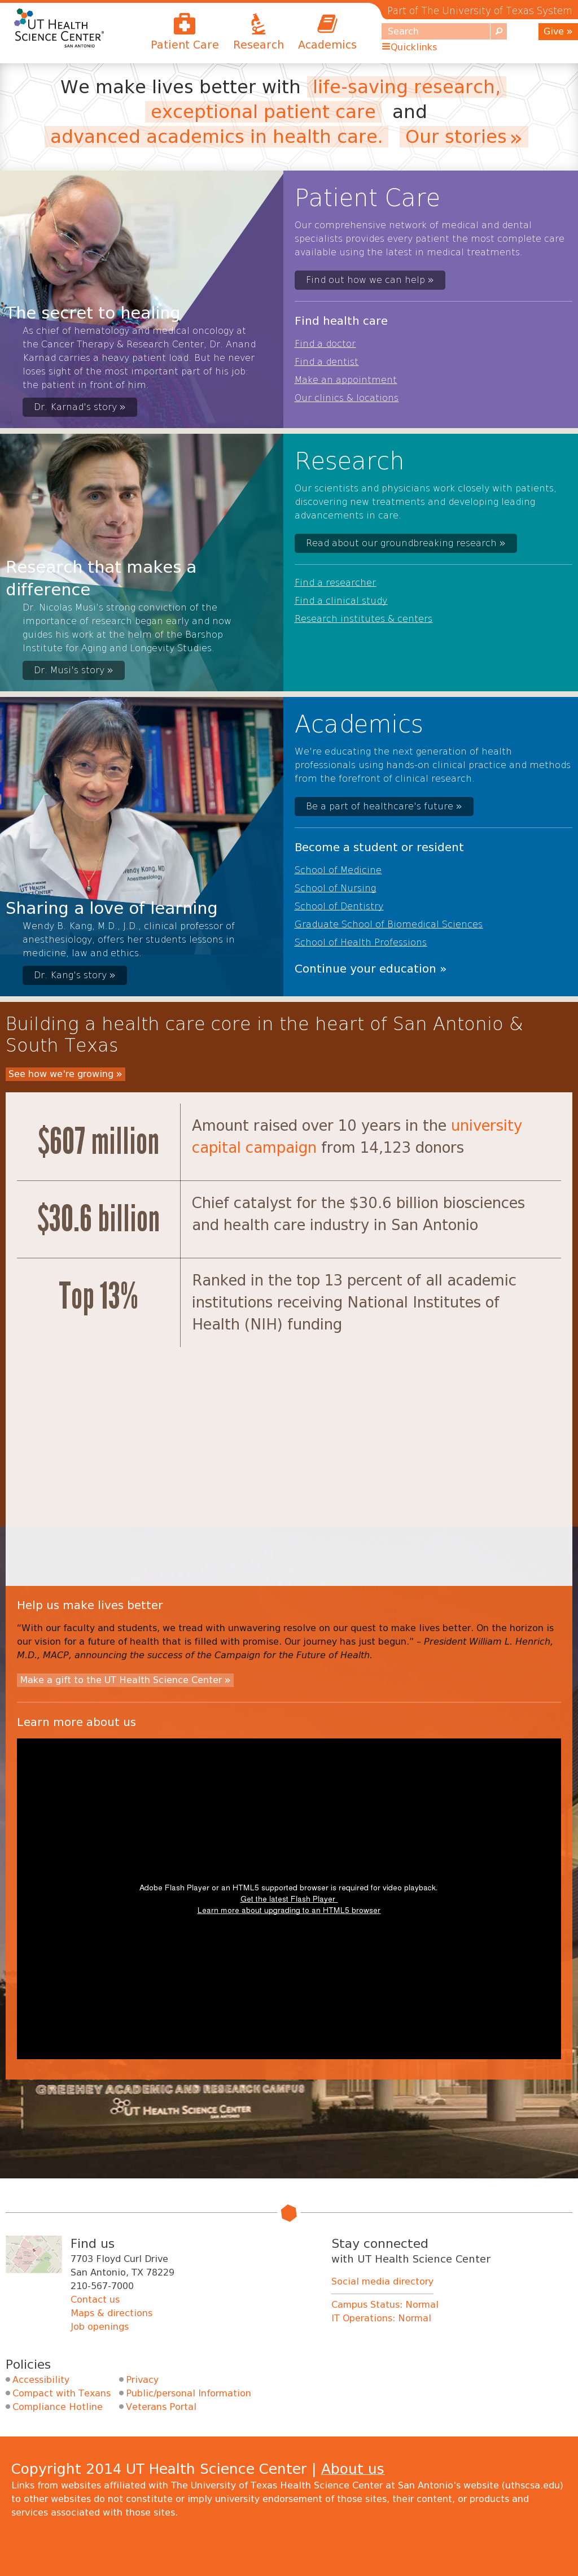 UT Health Science Center Competitors, Revenue and Employees